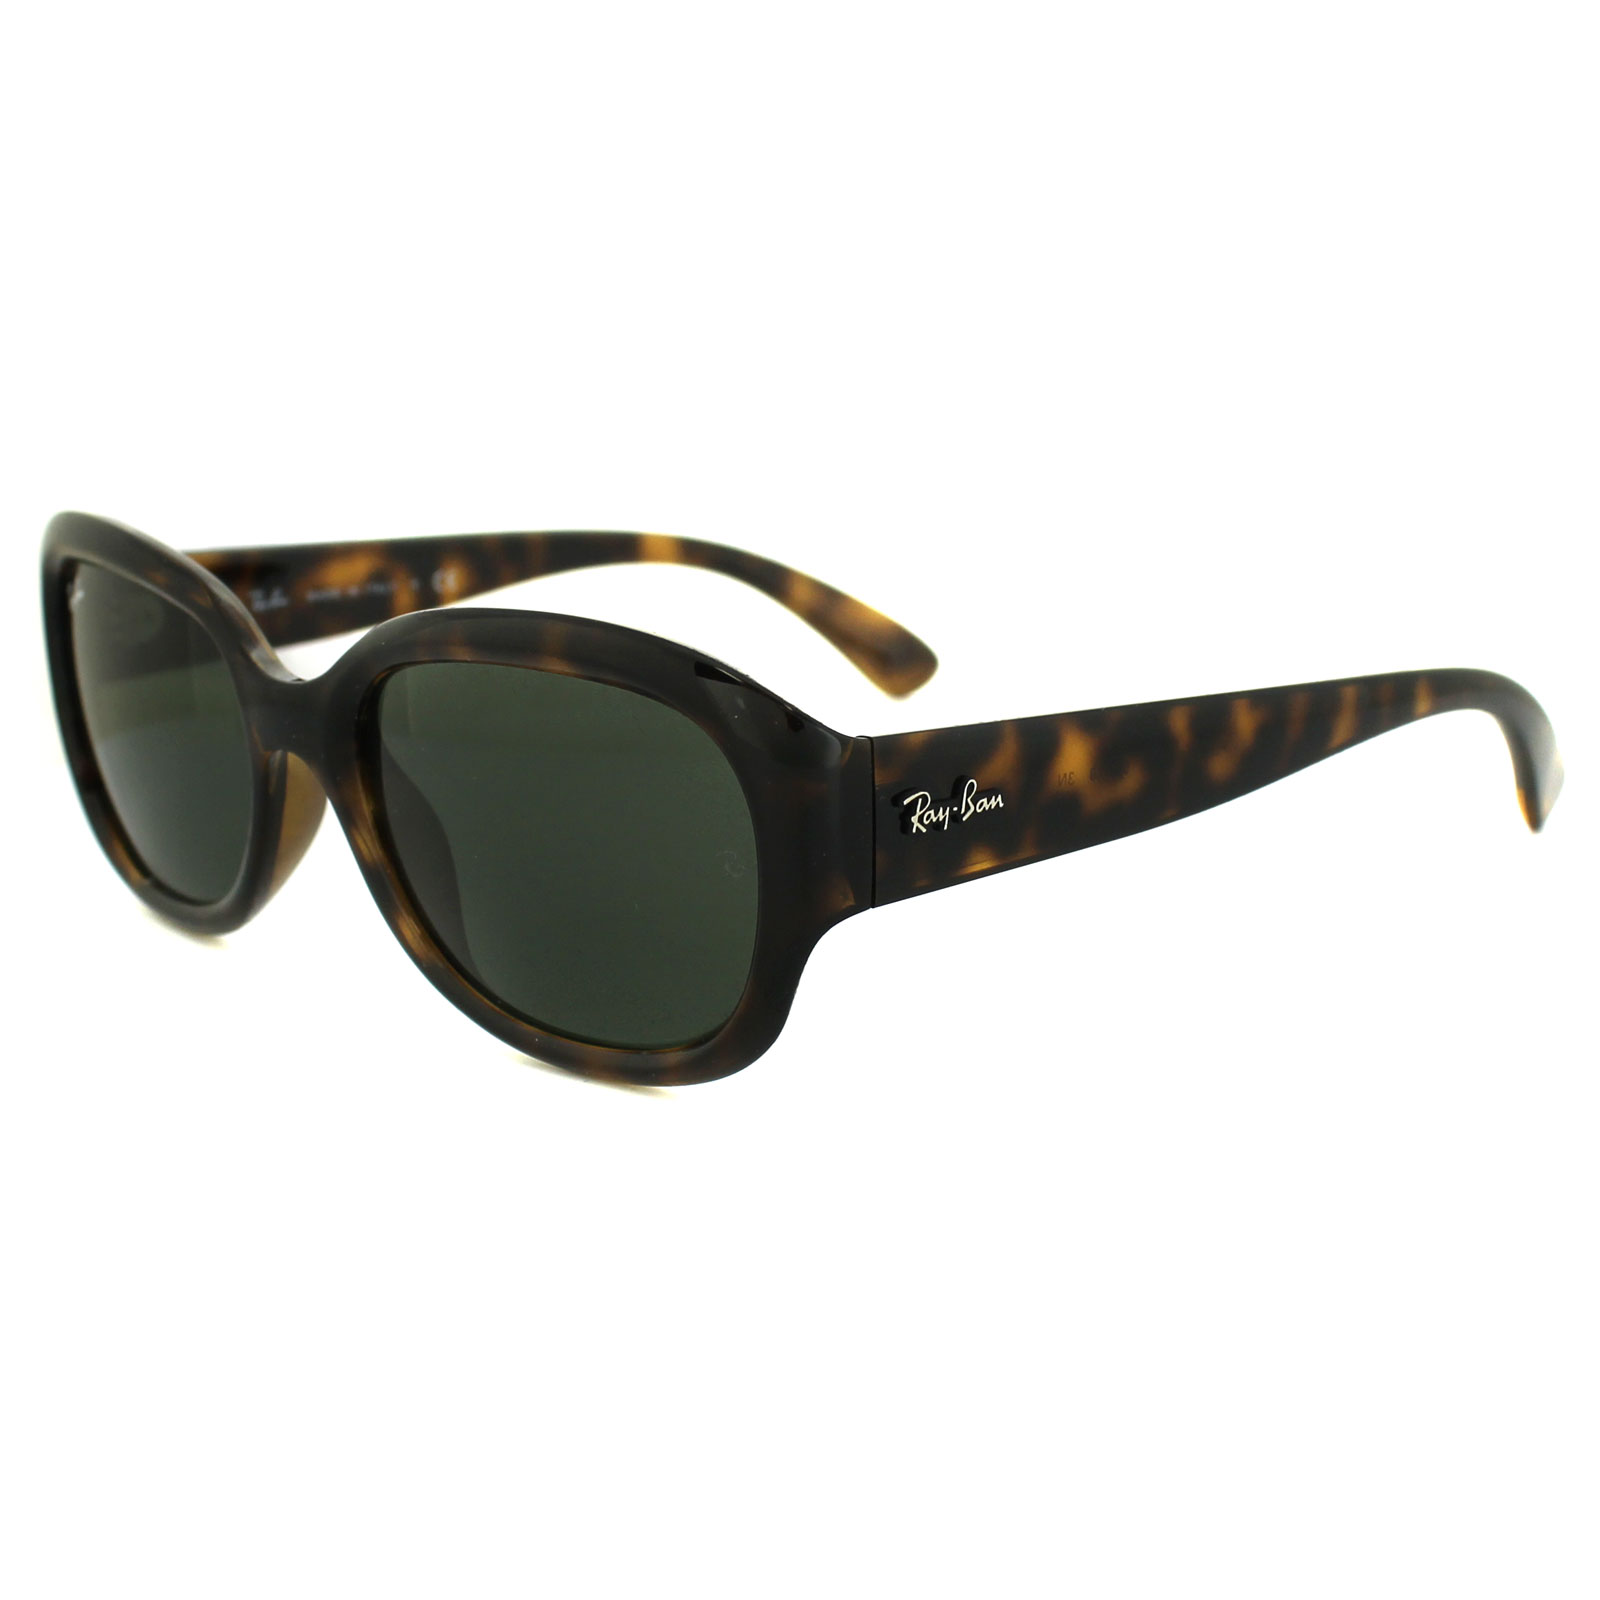 9b14150bd0 Ray Ban European Outlet « Heritage Malta